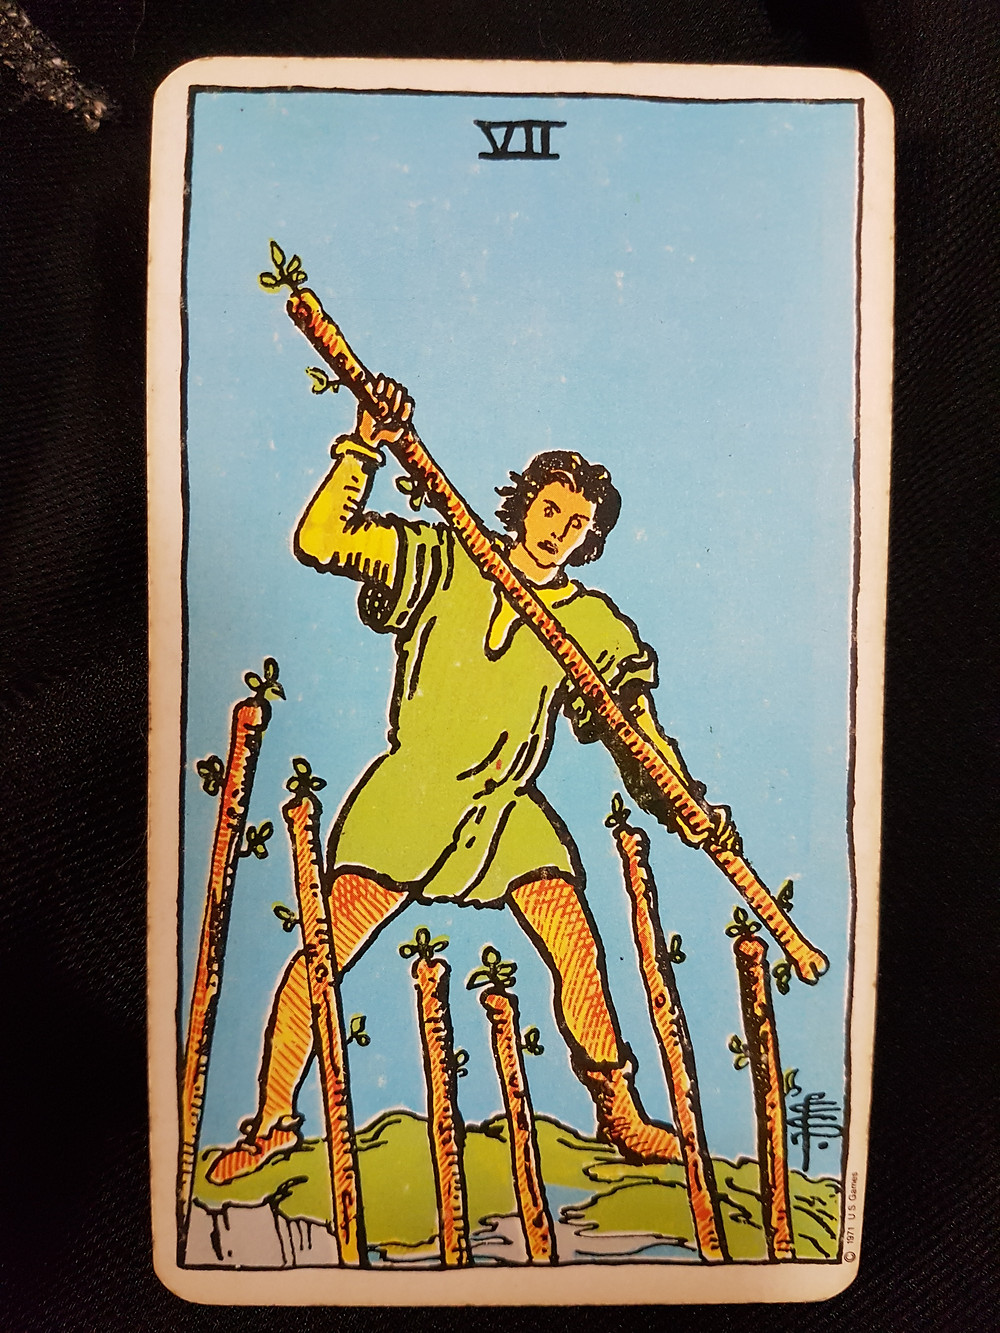 7 of Wands - lyns readings.com